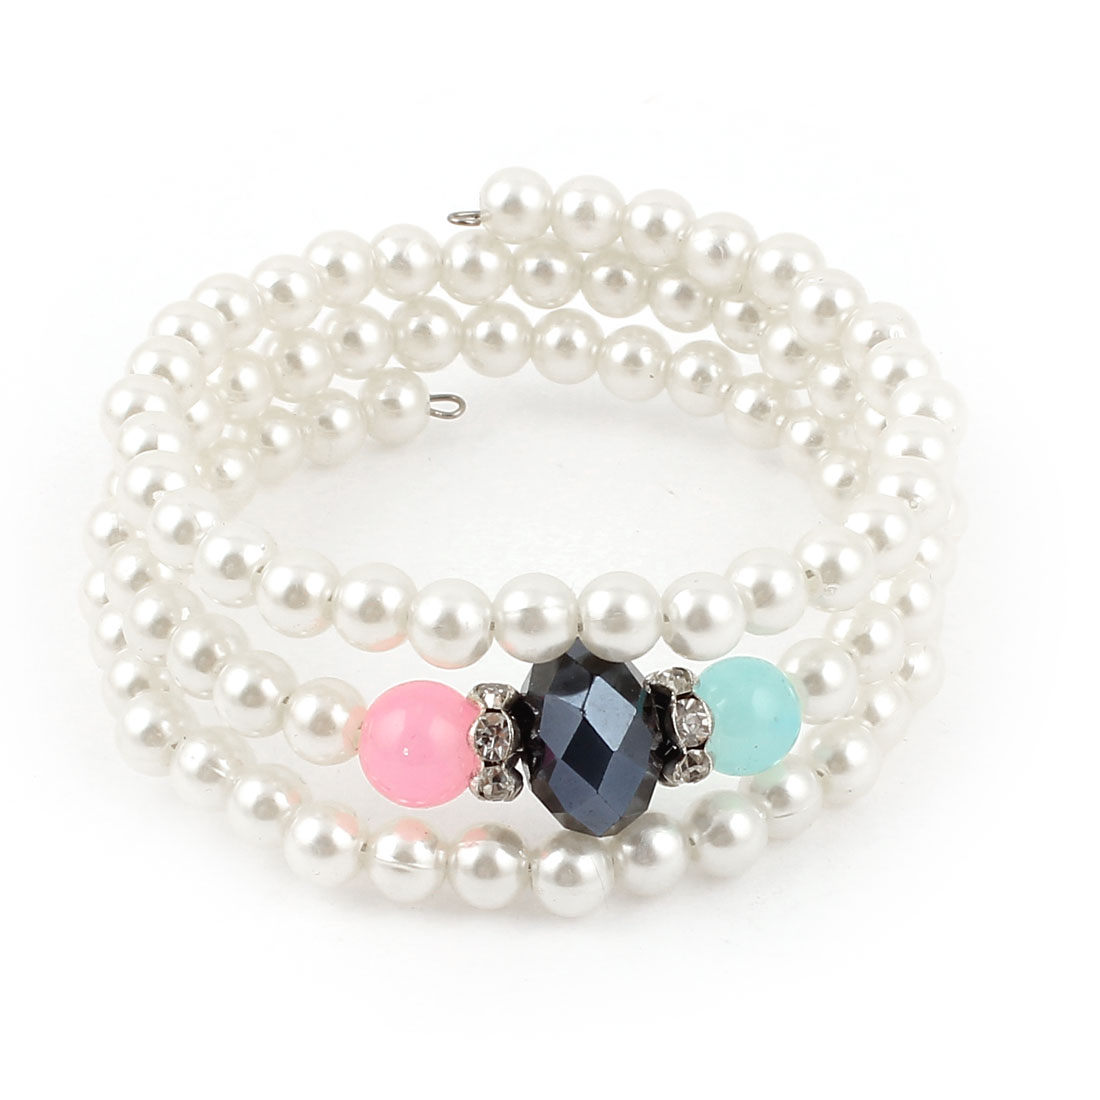 Lady Blue Multifacet Beads White Imitation Pearls 3 Layer Spiral Elastic Wrist Chain Bracelet Bangle